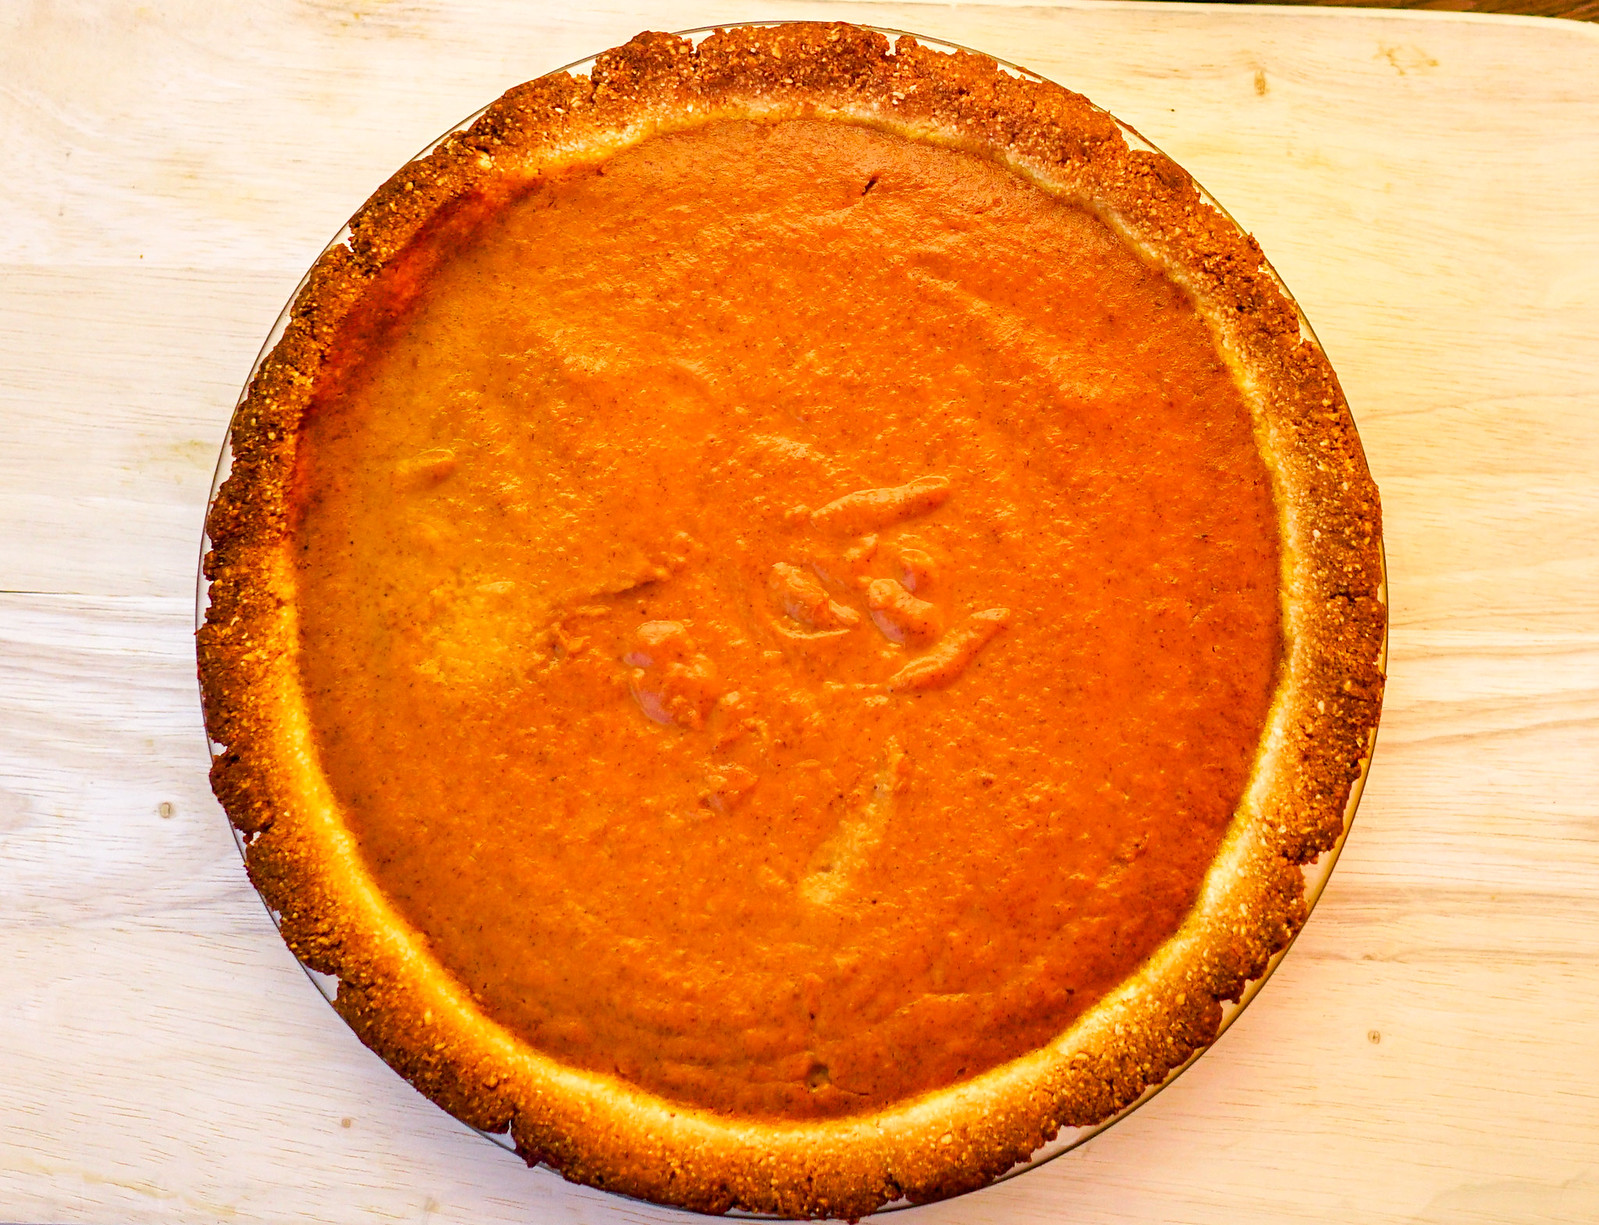 2018.11.05 CGM and Low-Carbohydrate Pumpkin Pie, Washington, DC USA 07691